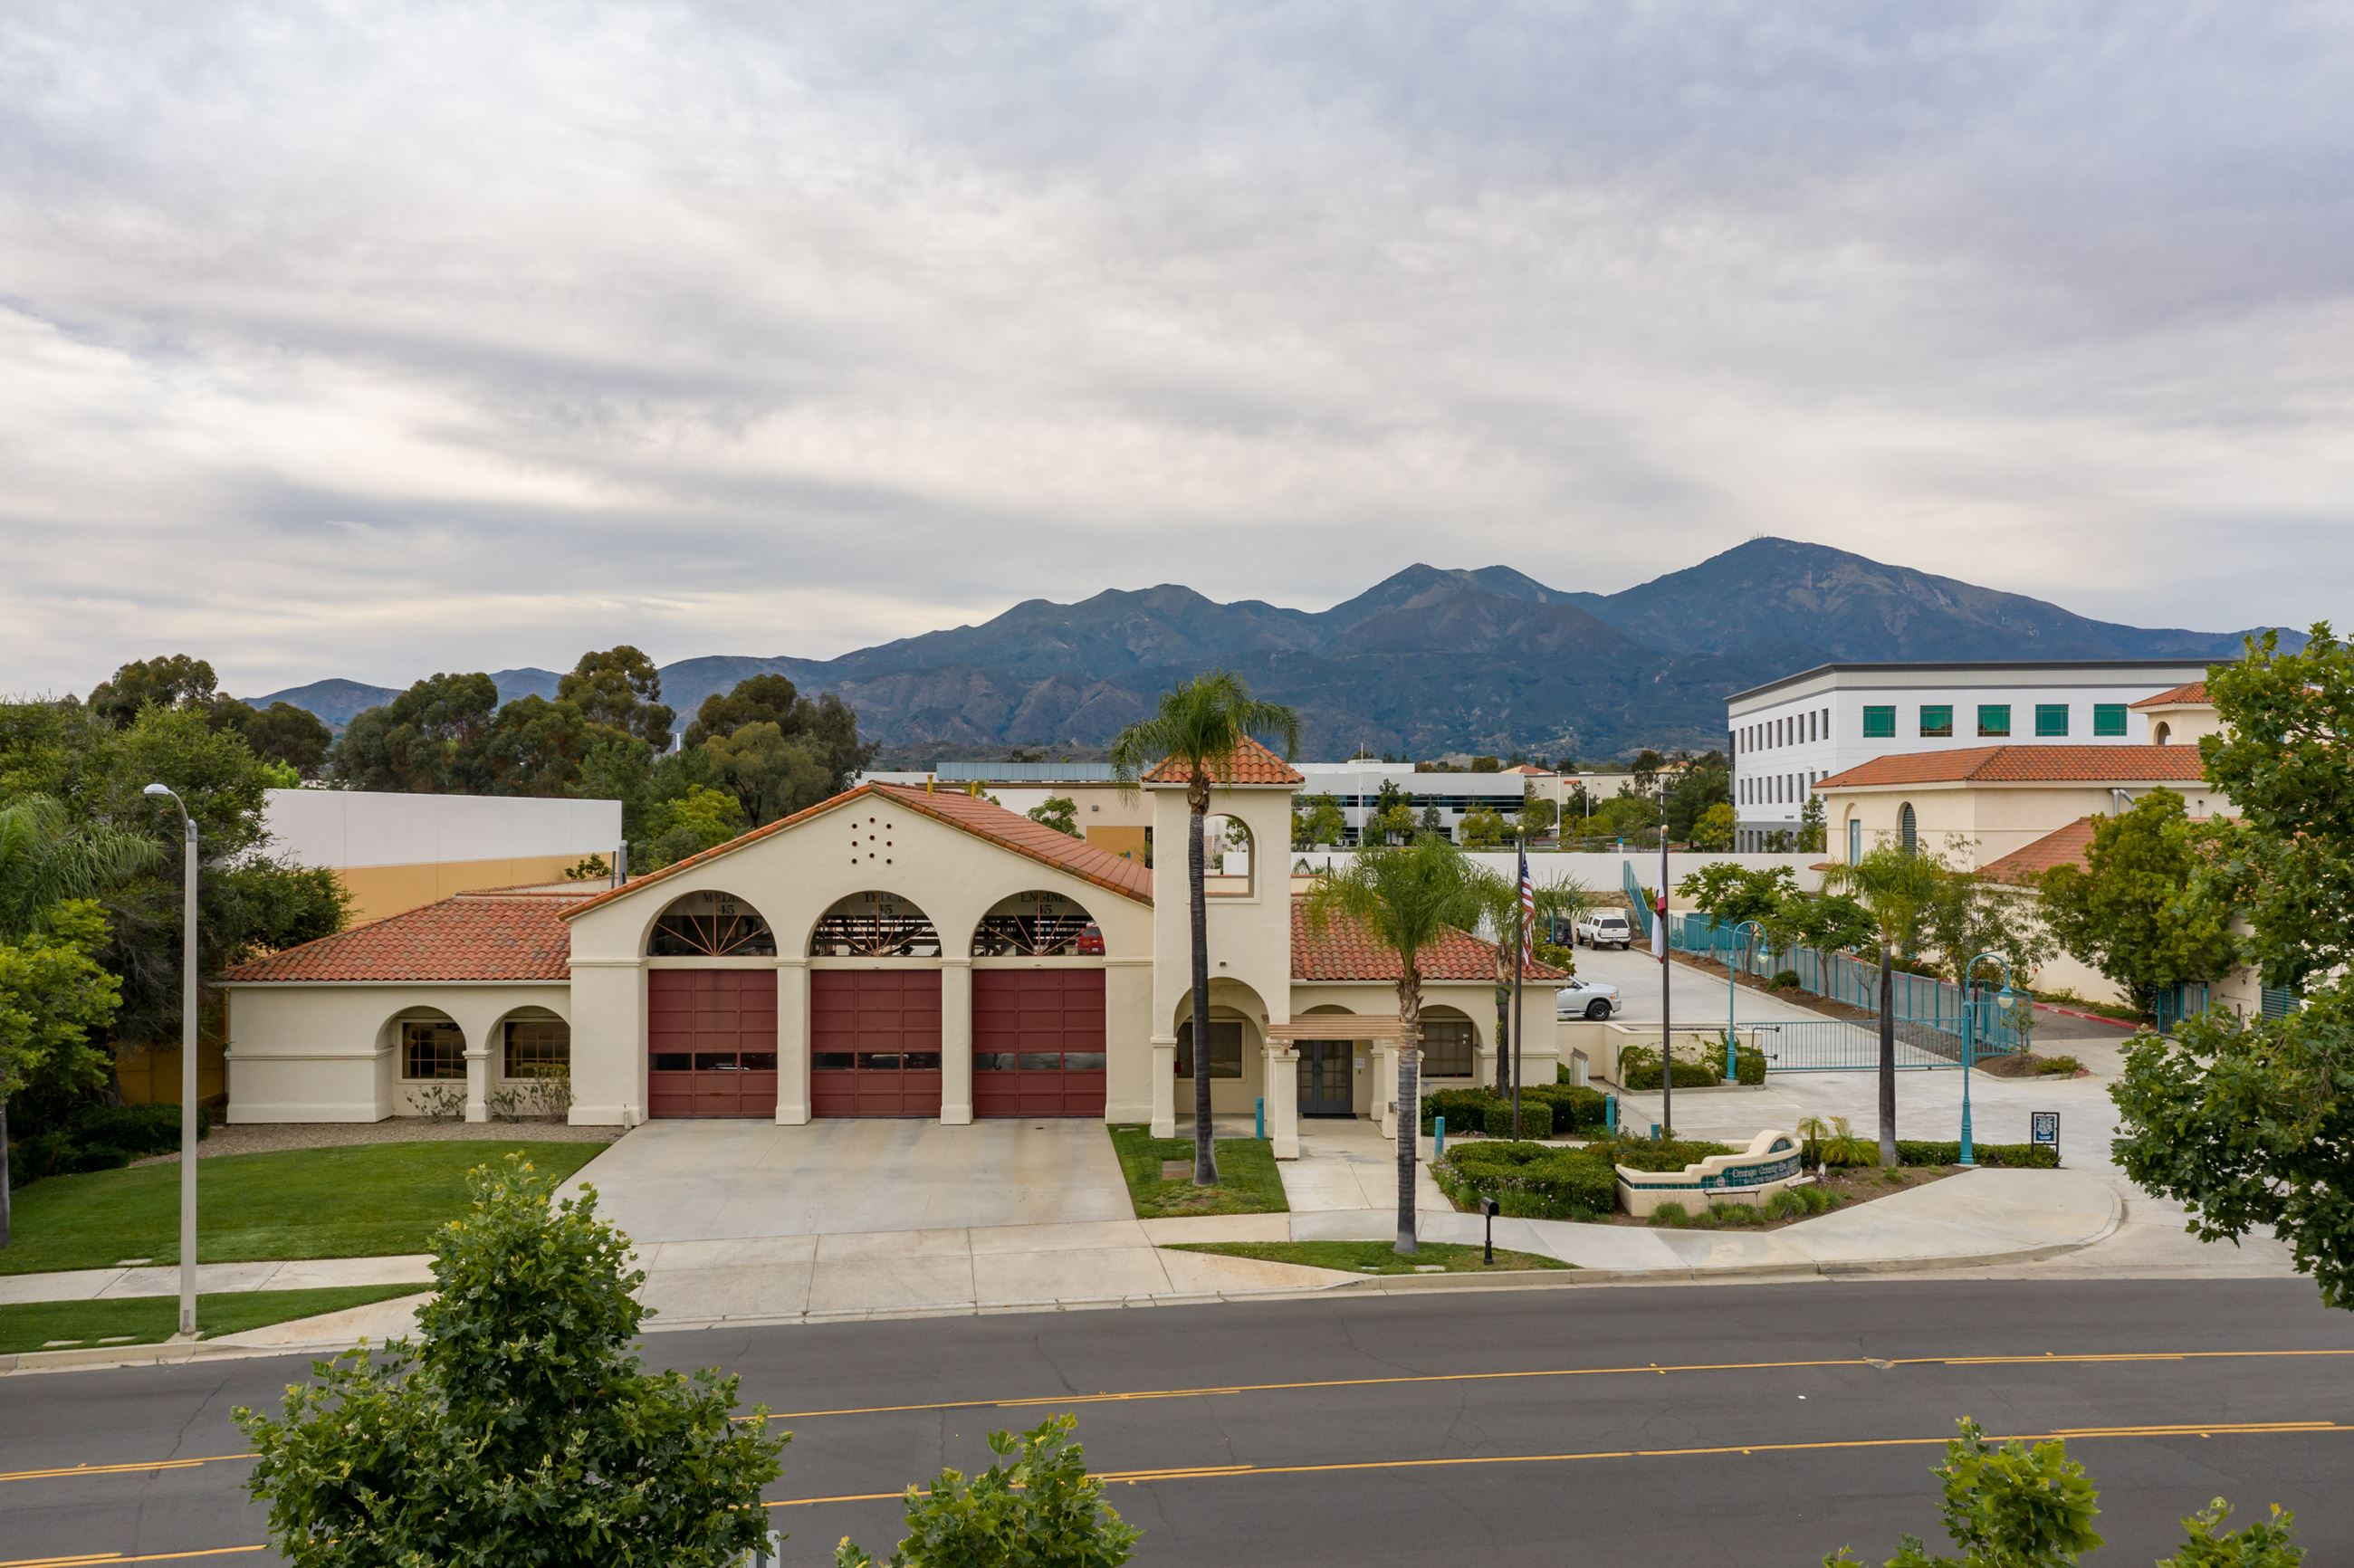 Fire Station 45, Rancho Santa Margarita